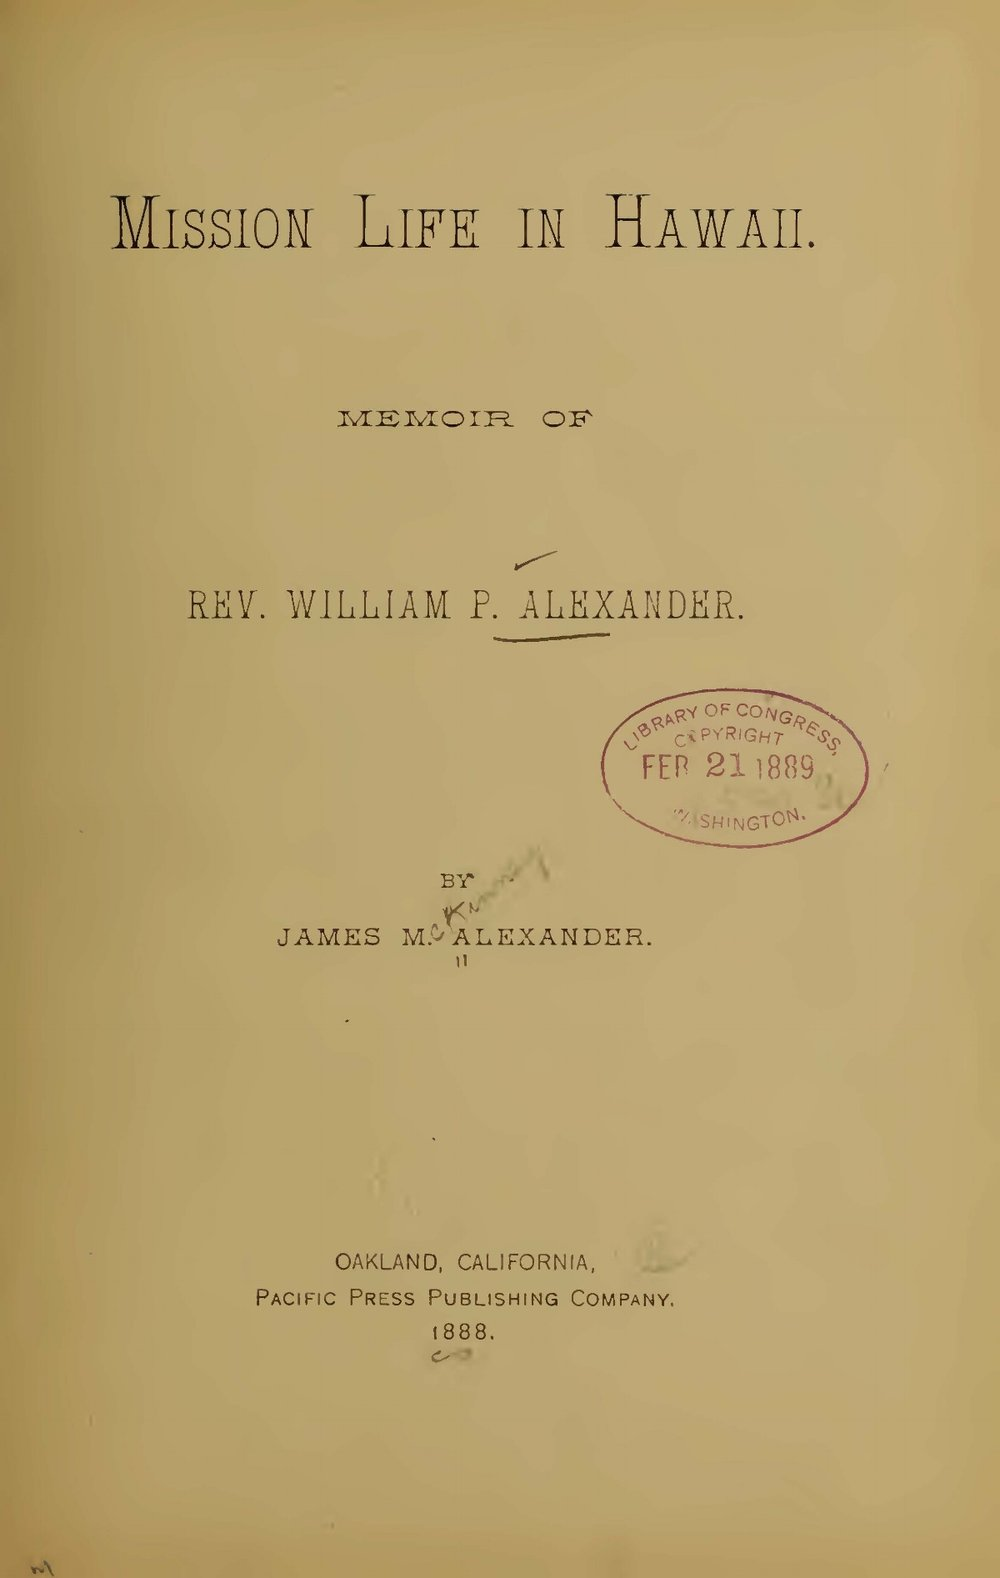 Alexander, James McKinney, Mission Life in Hawaii Memoir of Rev. William P. Alexander Title Page.jpg